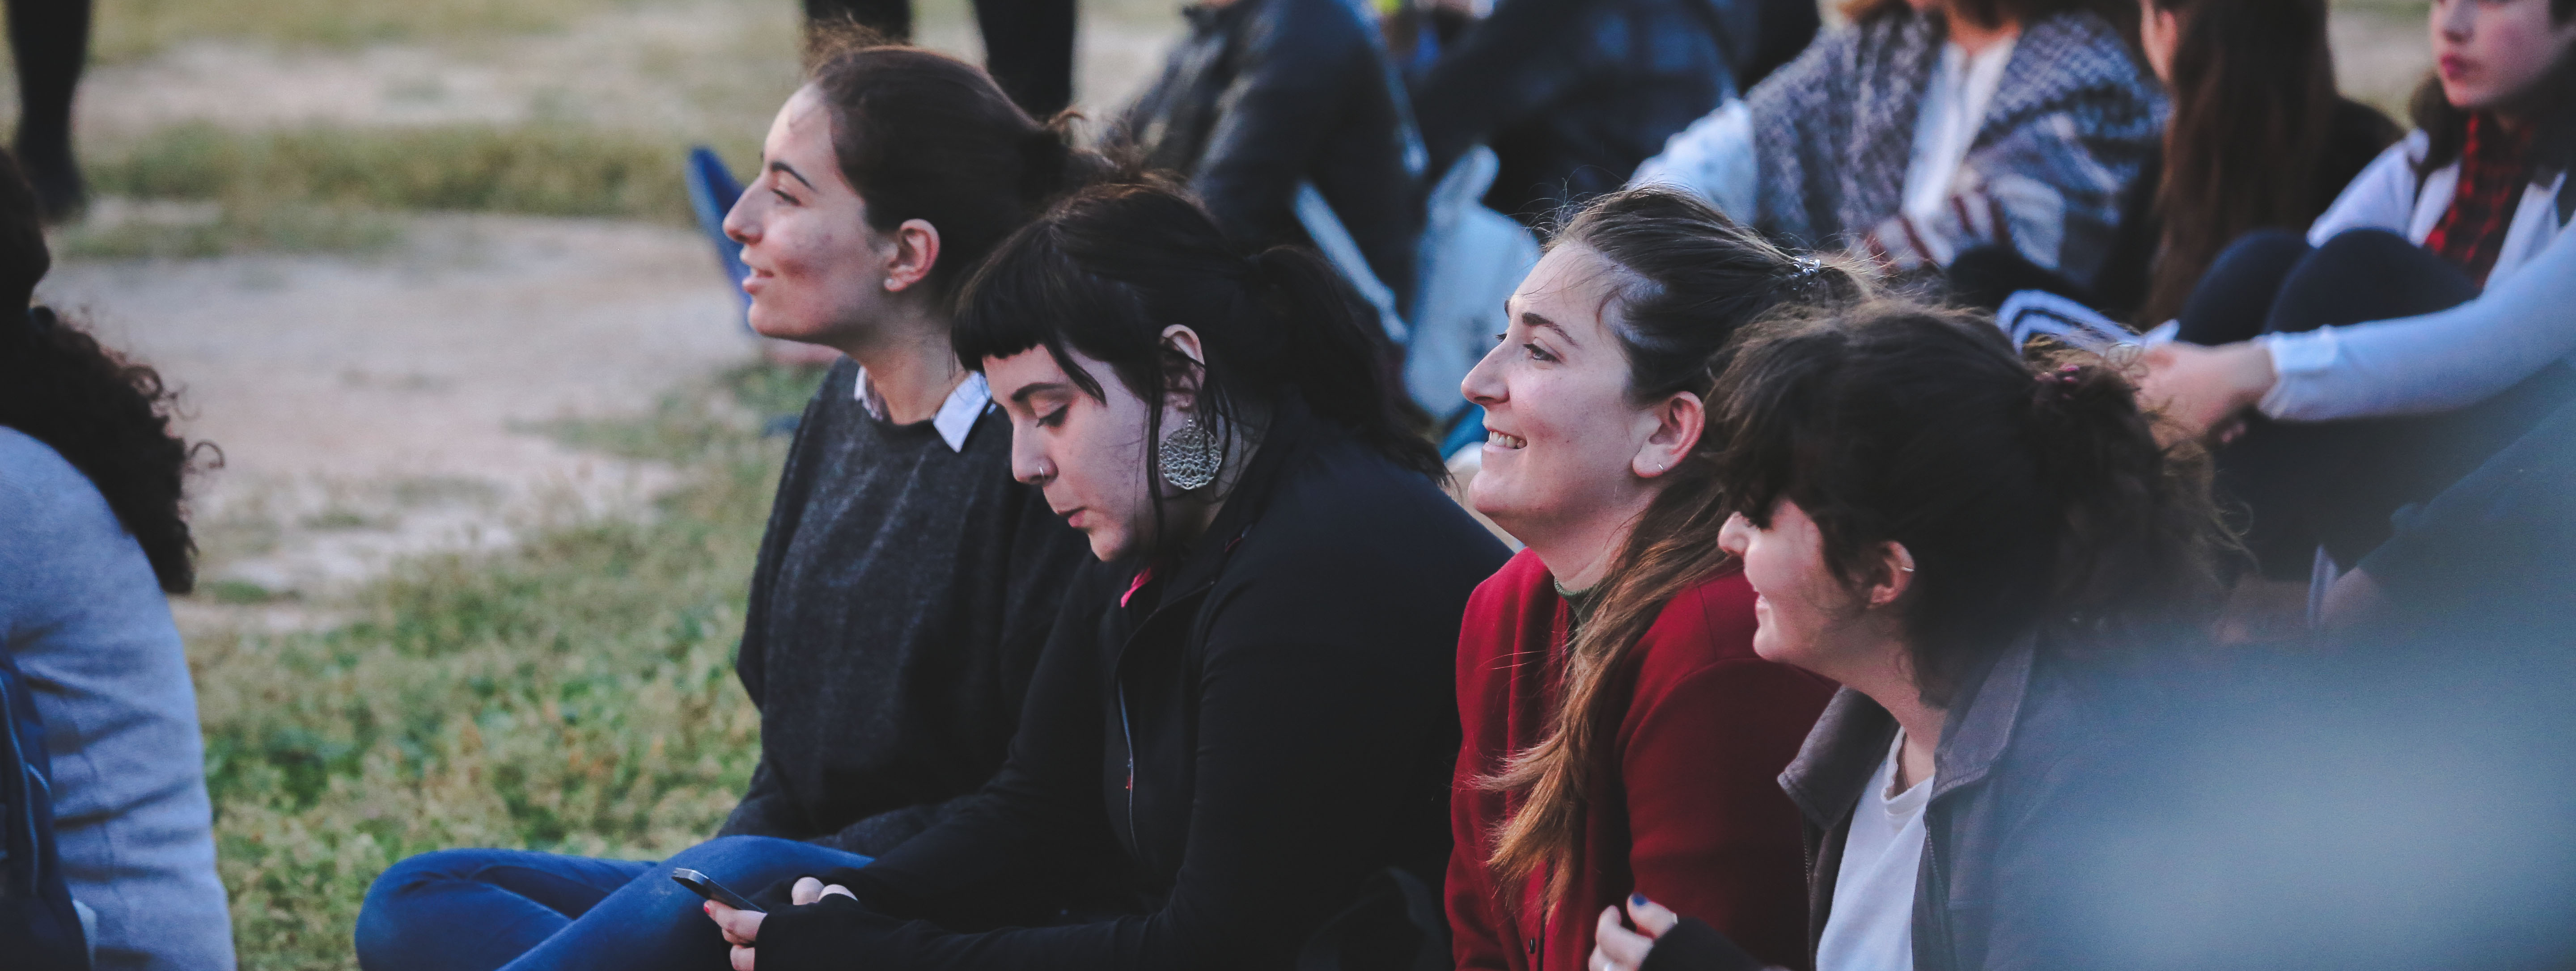 ADOLESCENCE AND YOUTH MINISTRY COURSE malta